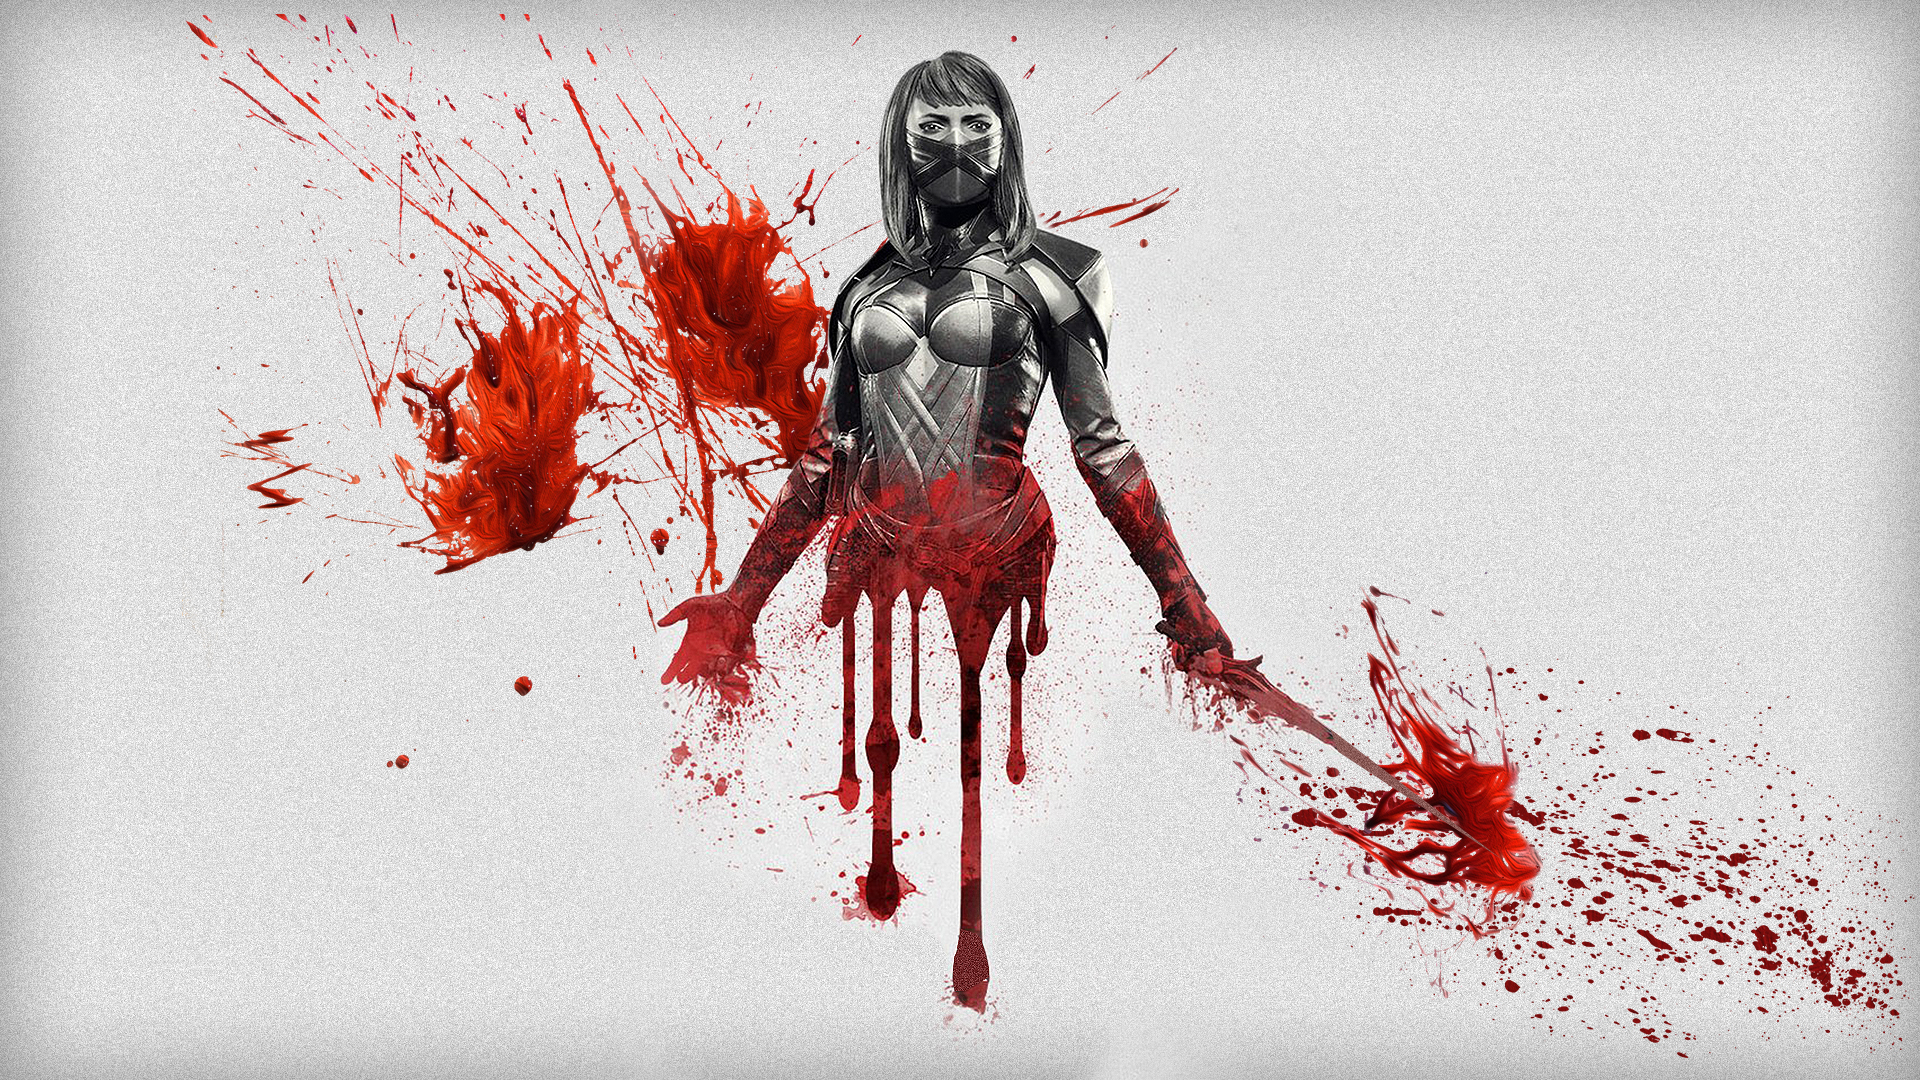 Skarlet and Blood Background